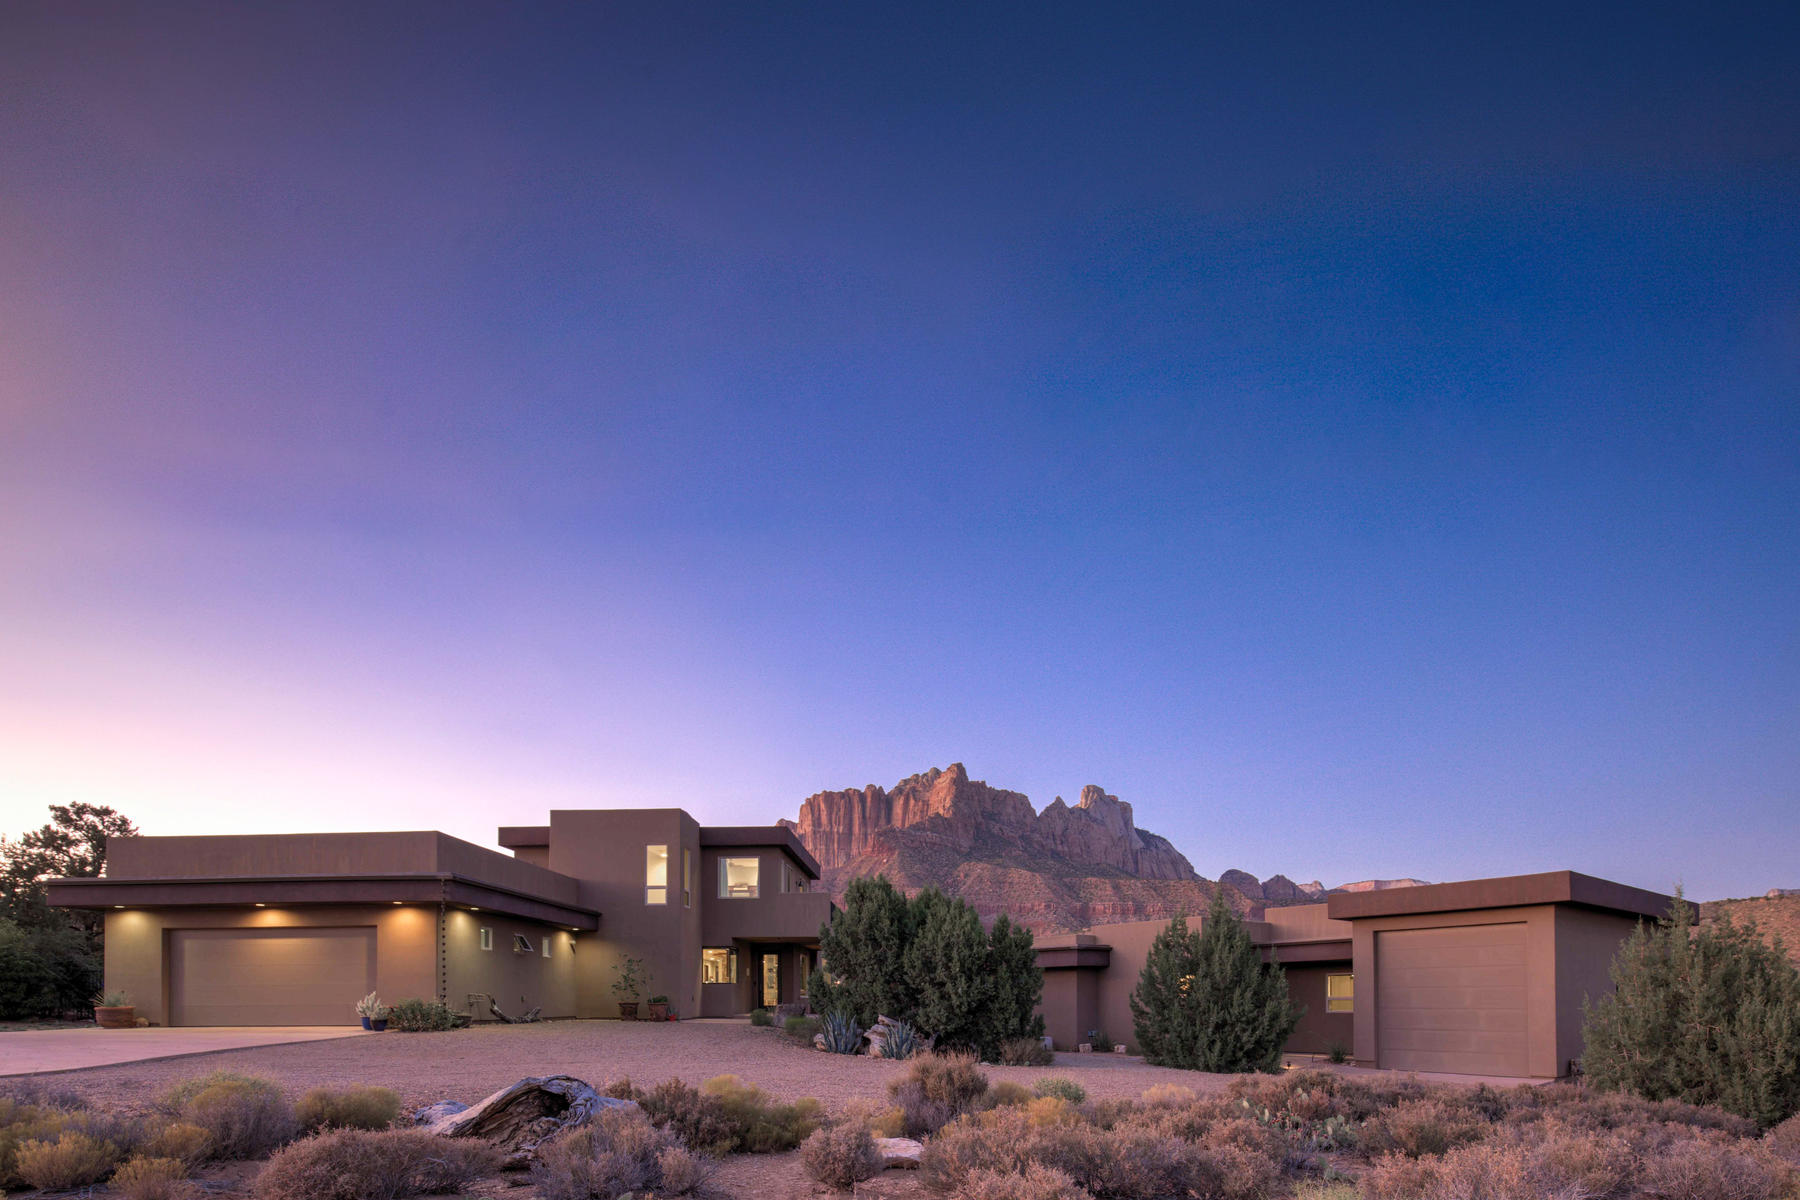 Single Family Homes for Sale at This Home in Zion Has it ALL! 2561 Anasazi Way, Springdale, Utah 84767 United States